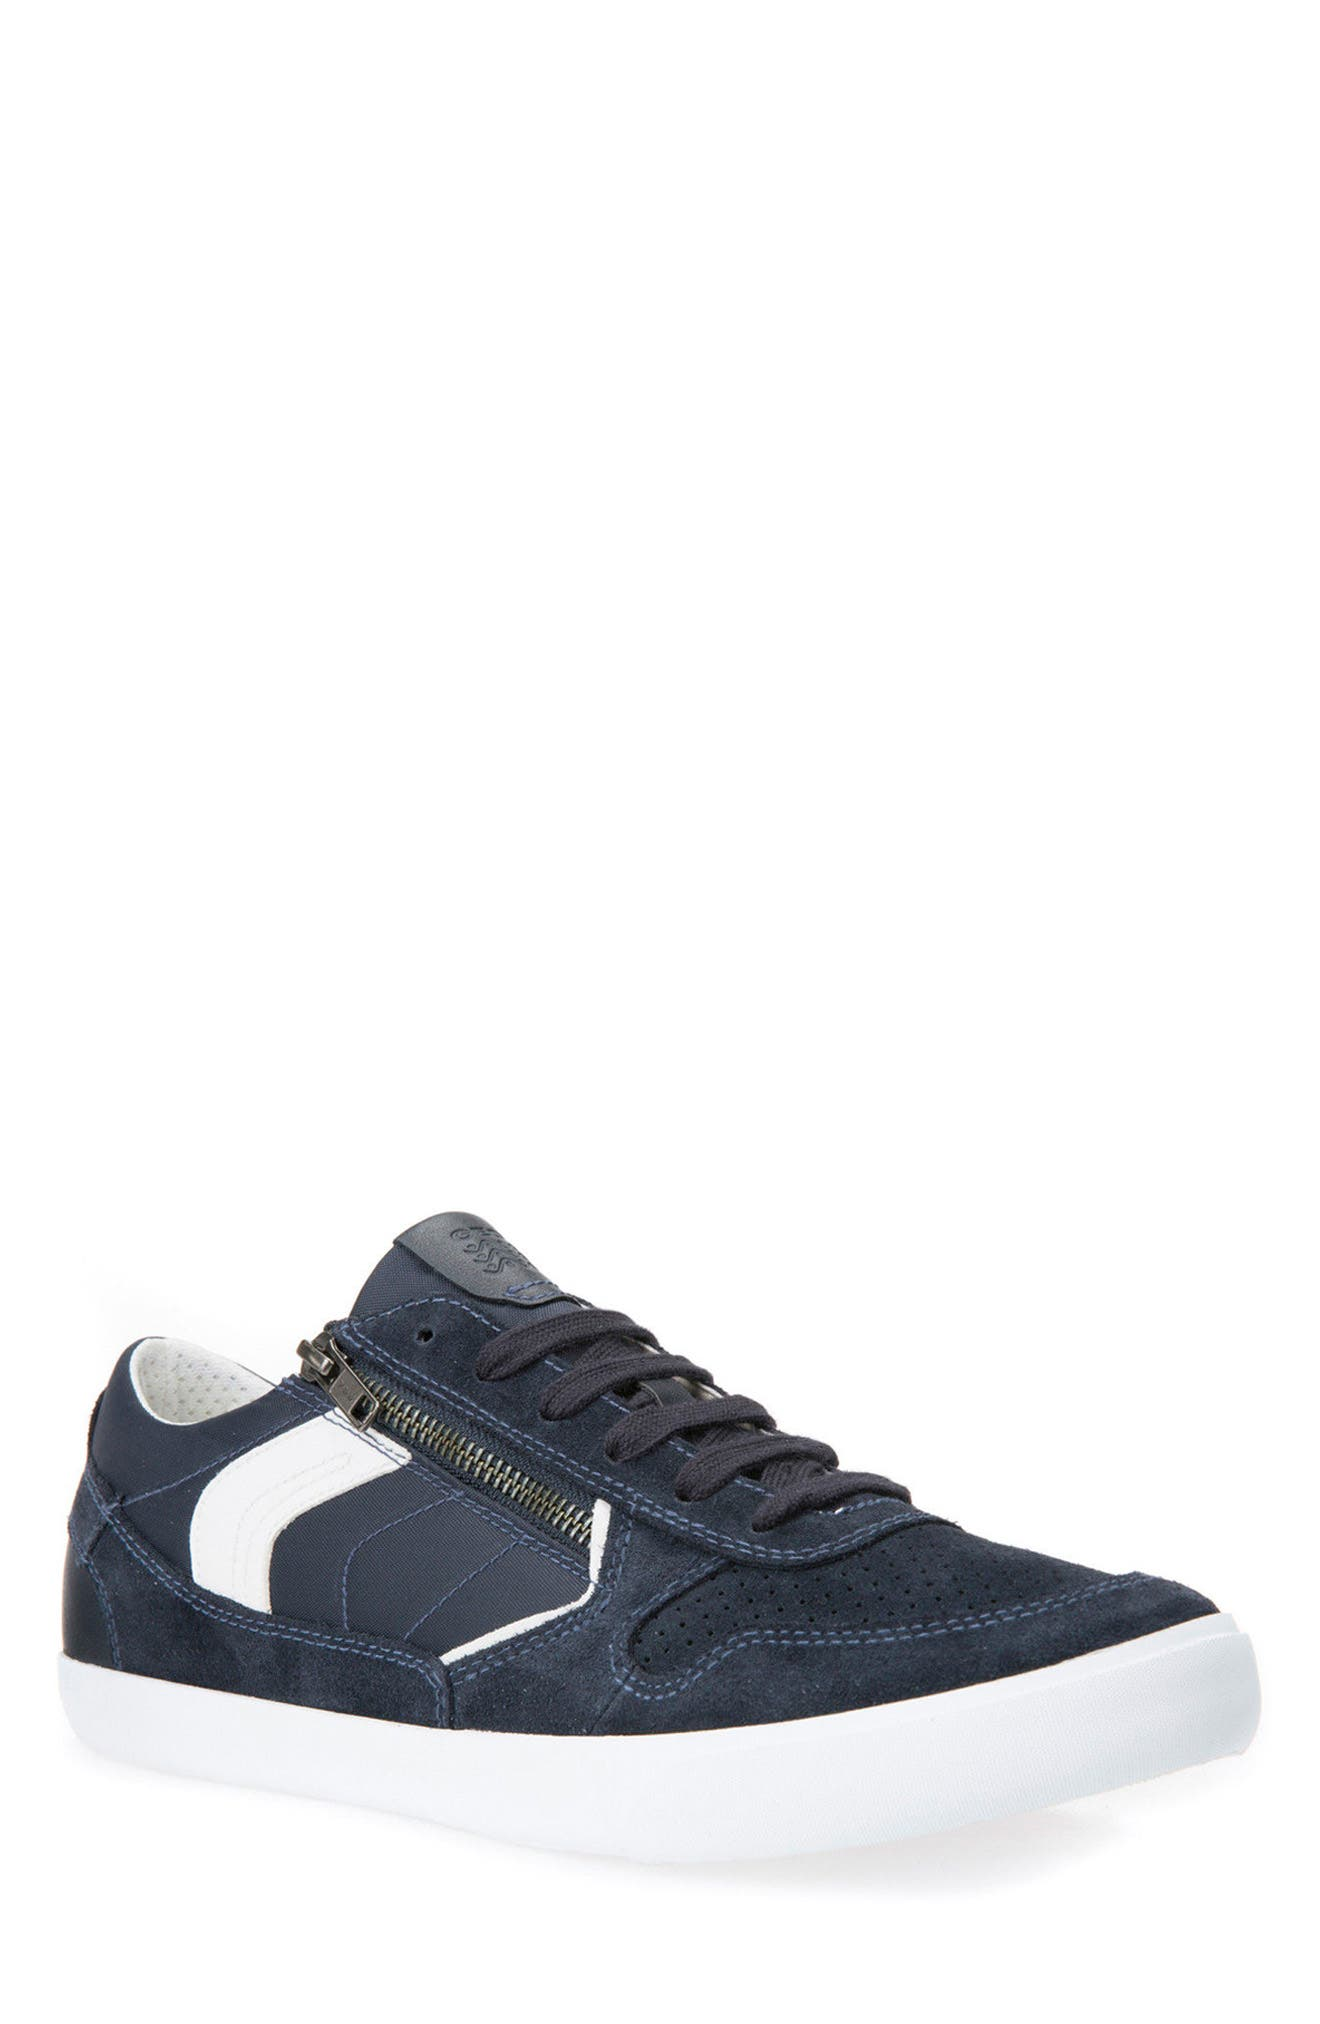 Box 33 Low Top Zip Sneaker,                         Main,                         color, Navy